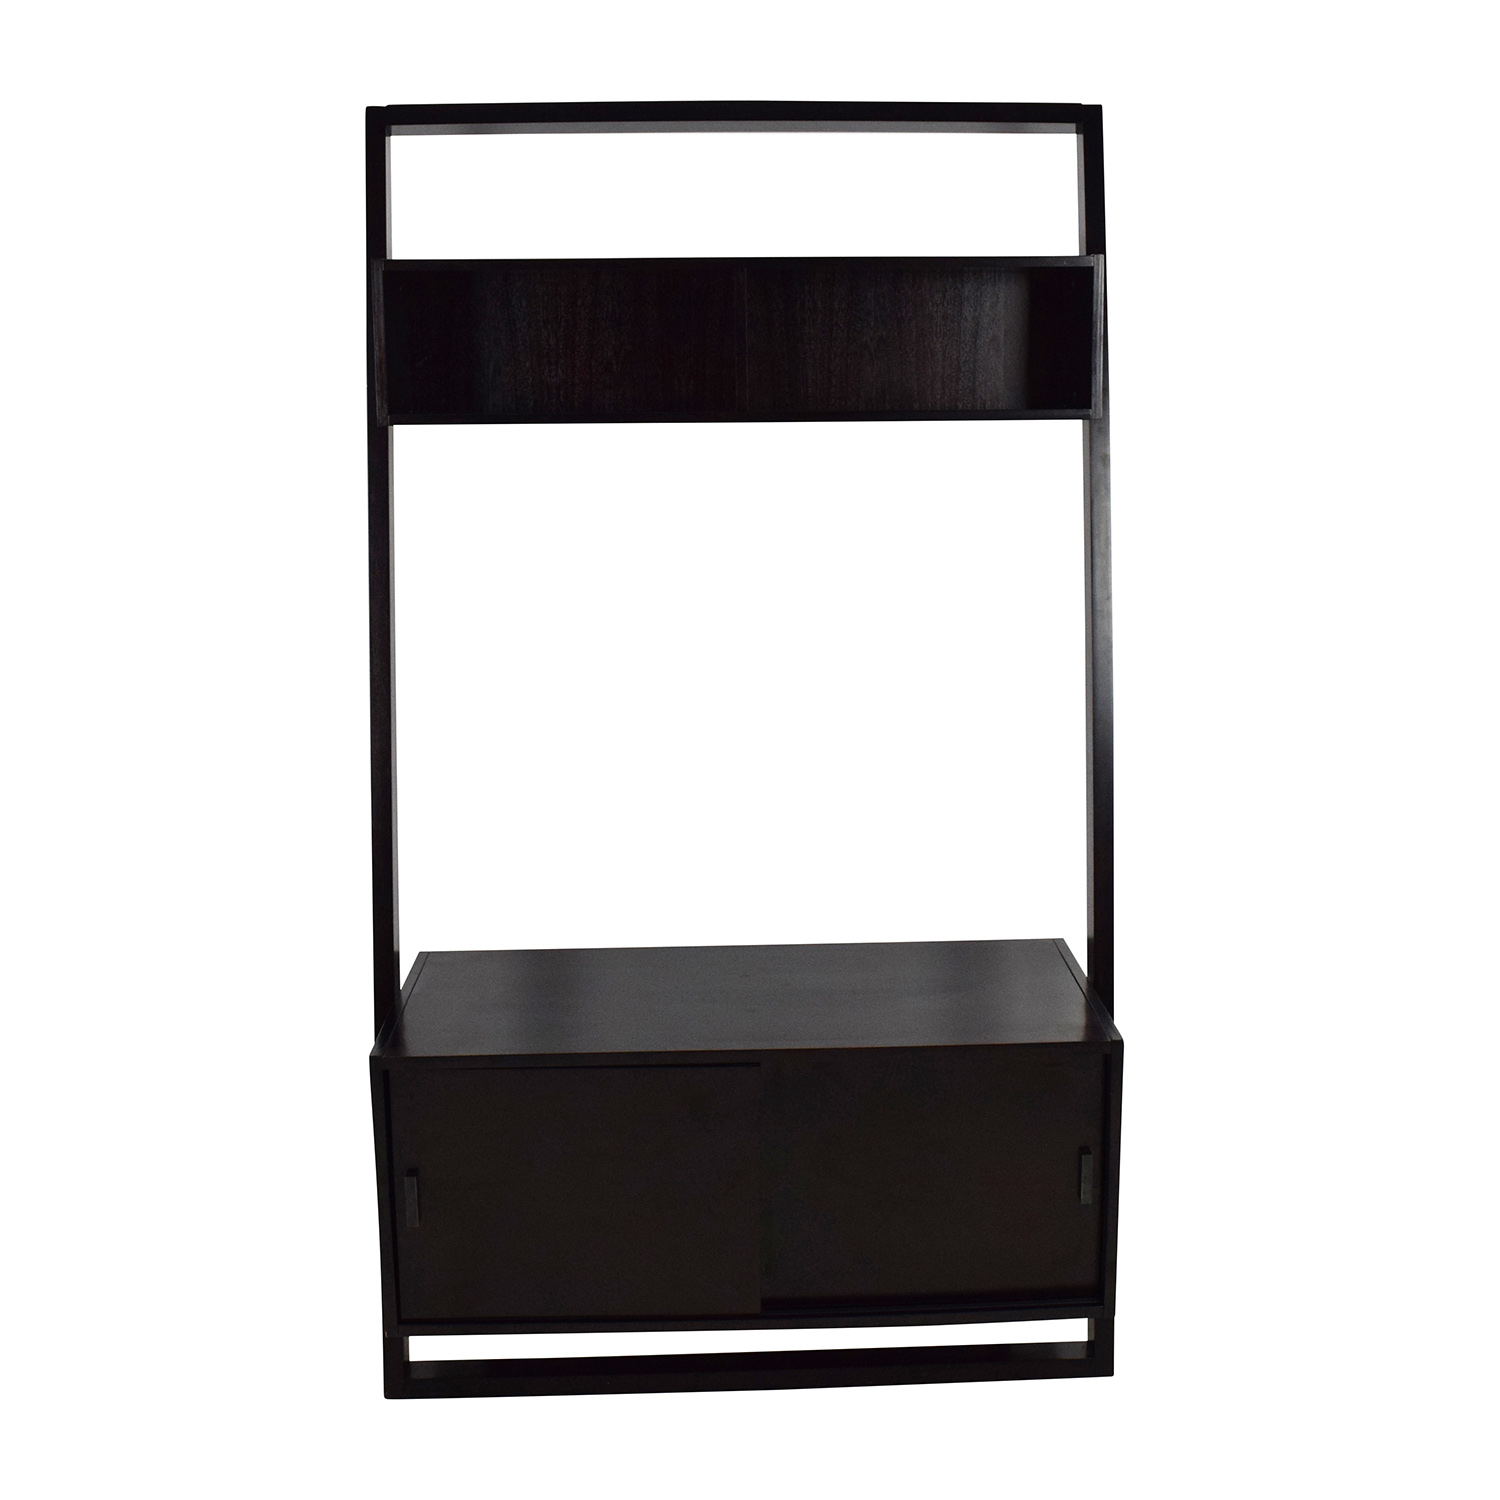 Crate and Barrel Crate & Barrel Sloane Leaning Media Stand price